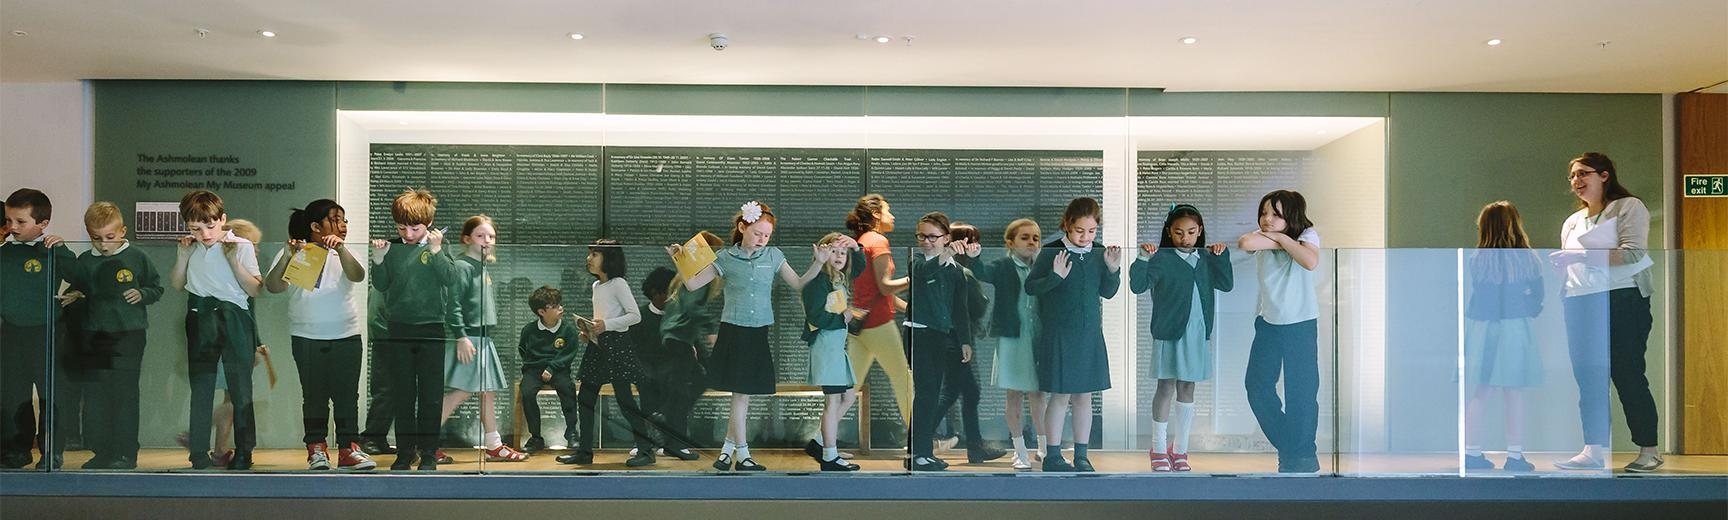 learn primary schools ashmolean